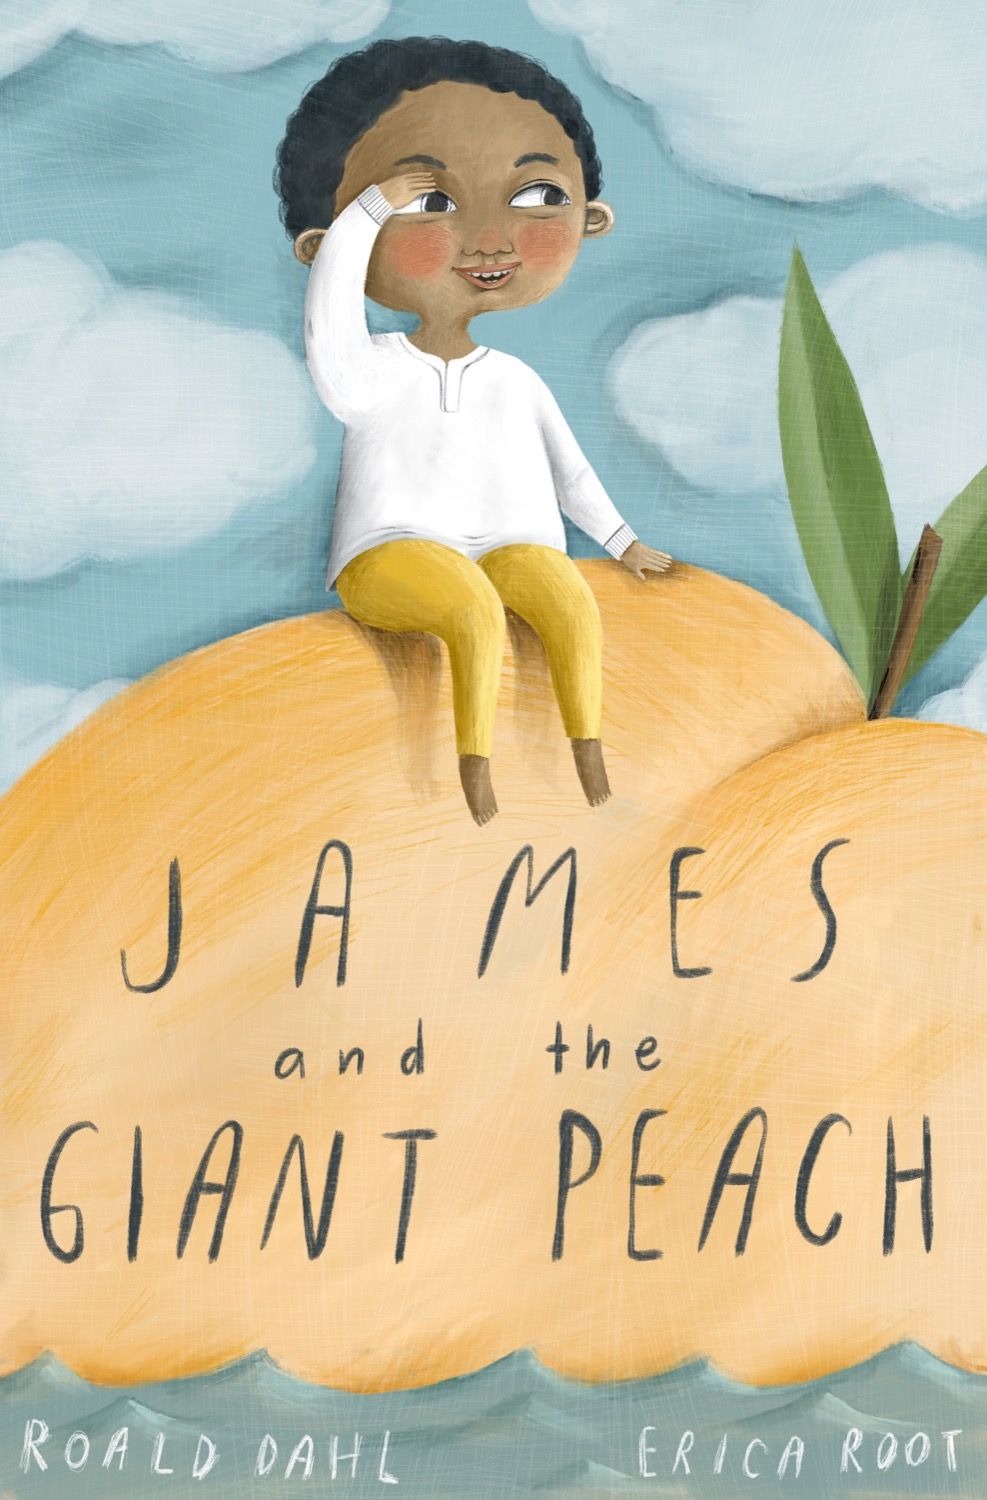 Updated_2019.05,_James_+_The_Giant_Peach.jpg